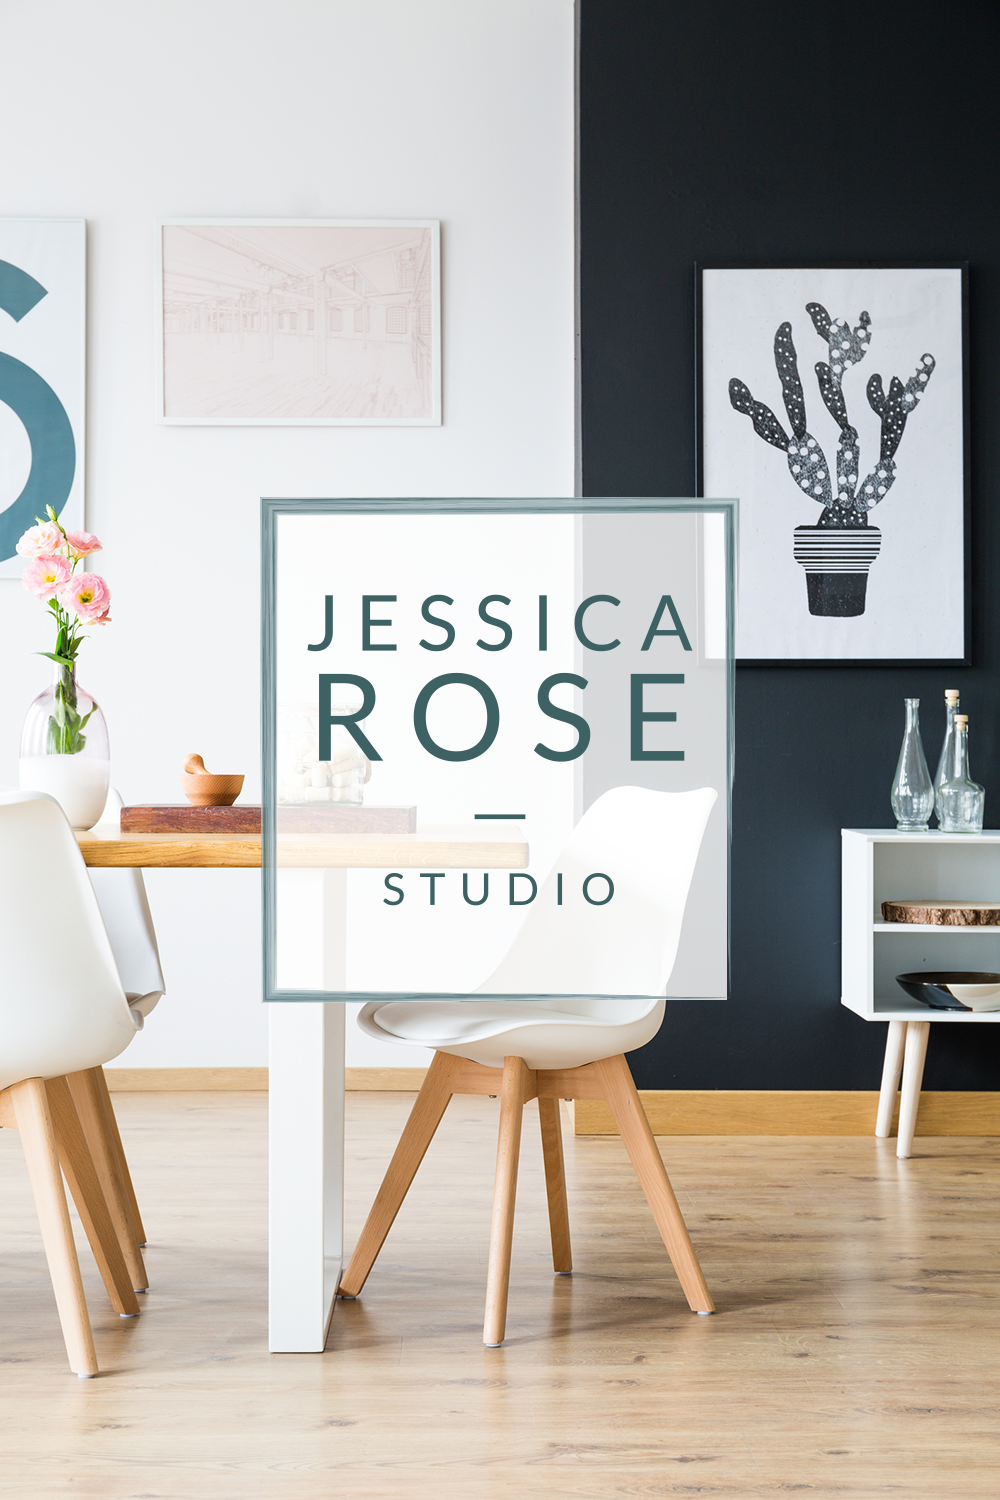 Logo & business card design for interior designer Jessica Rose based in San Diego. She creates unique and functional interiors where people can feel their absolute best - specializing in interior design for startups and small businesses. -